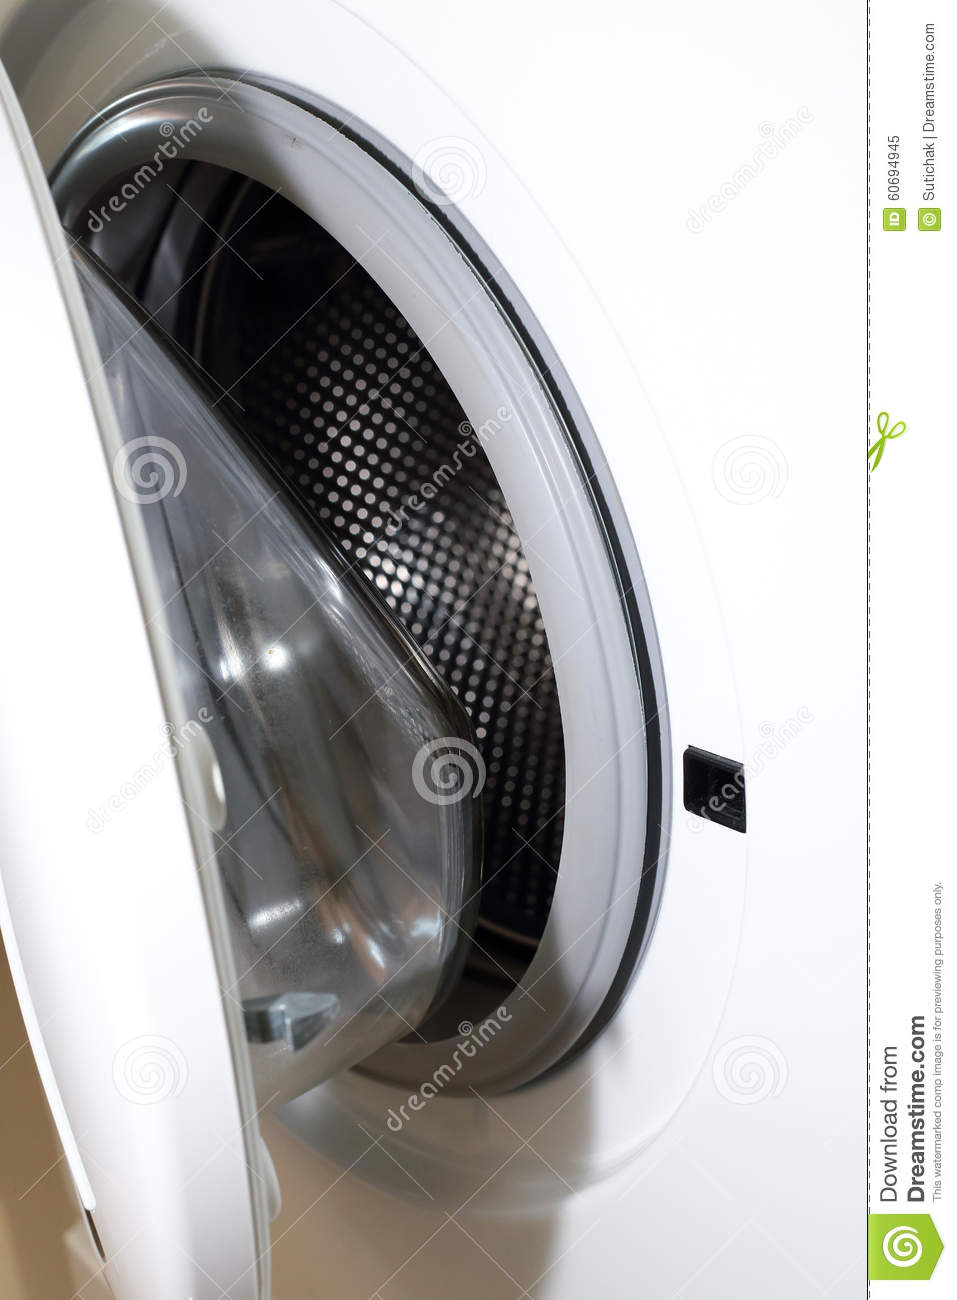 cleaning clothes washing machine